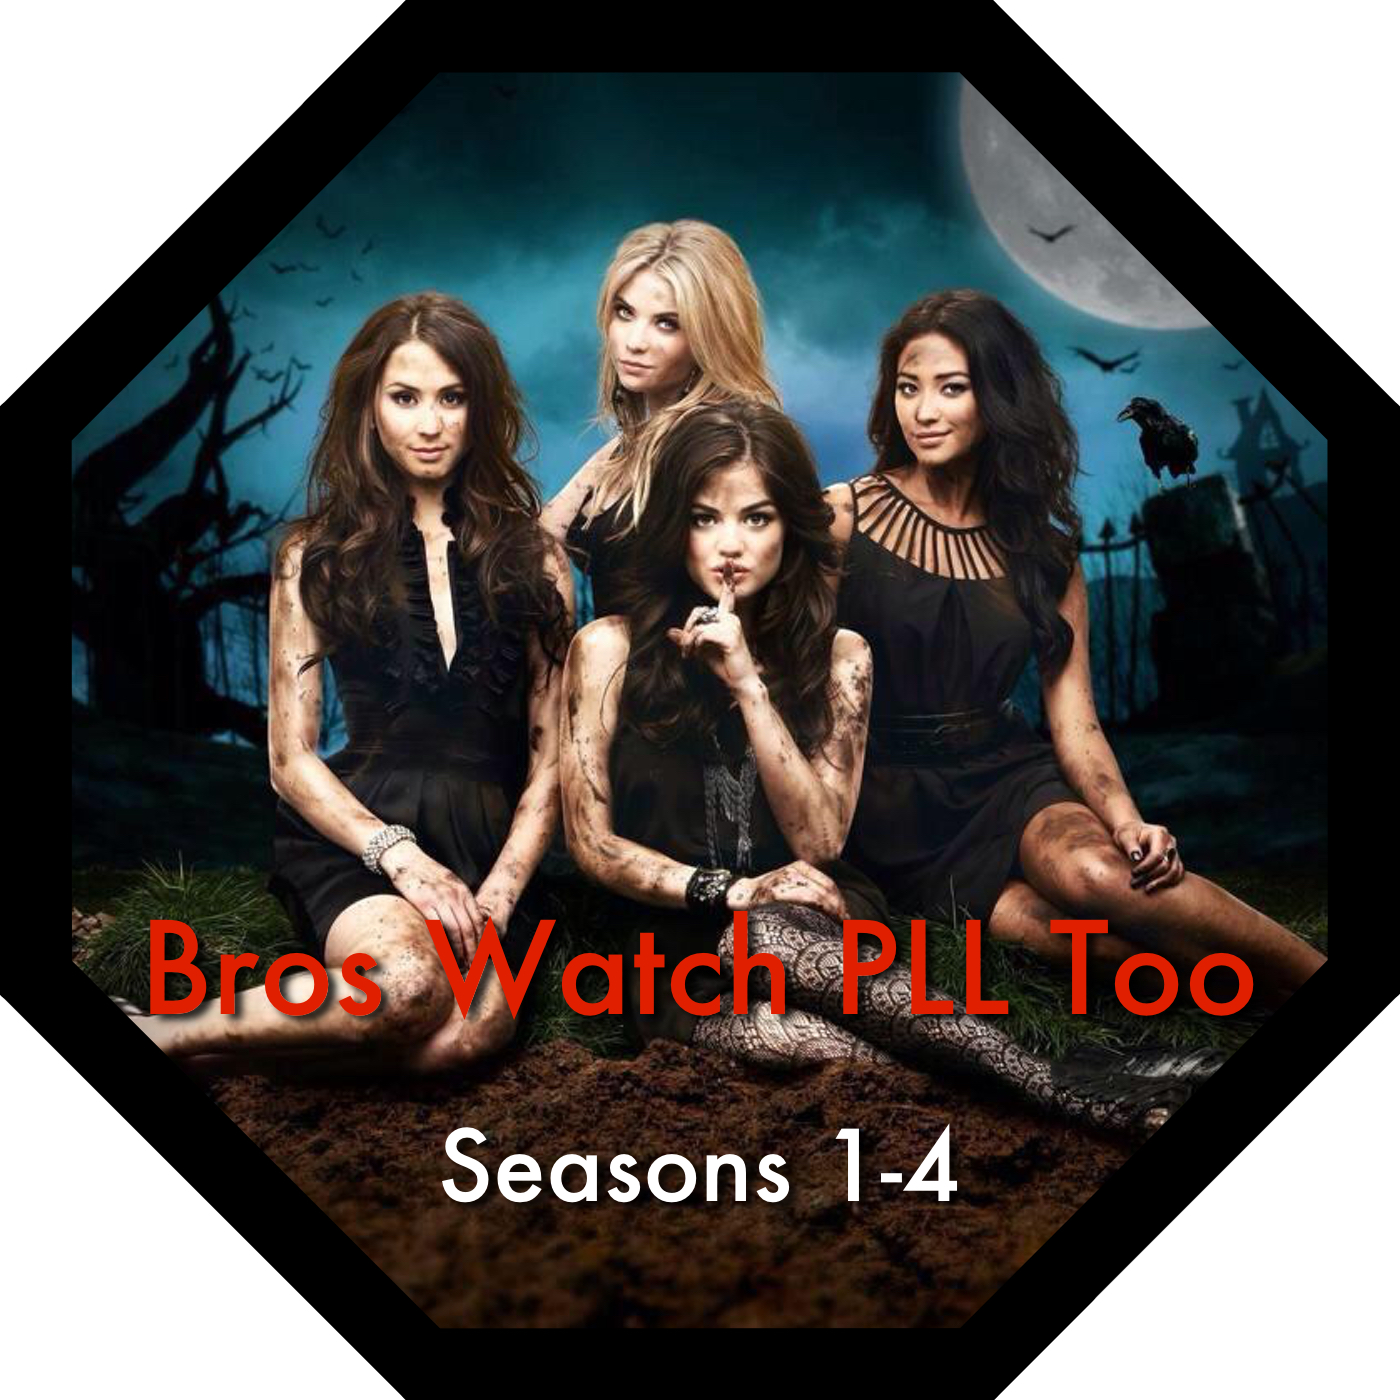 Bros Watch PLL Too - A Pretty Little Liars Podcast, Seasons 1 - 4